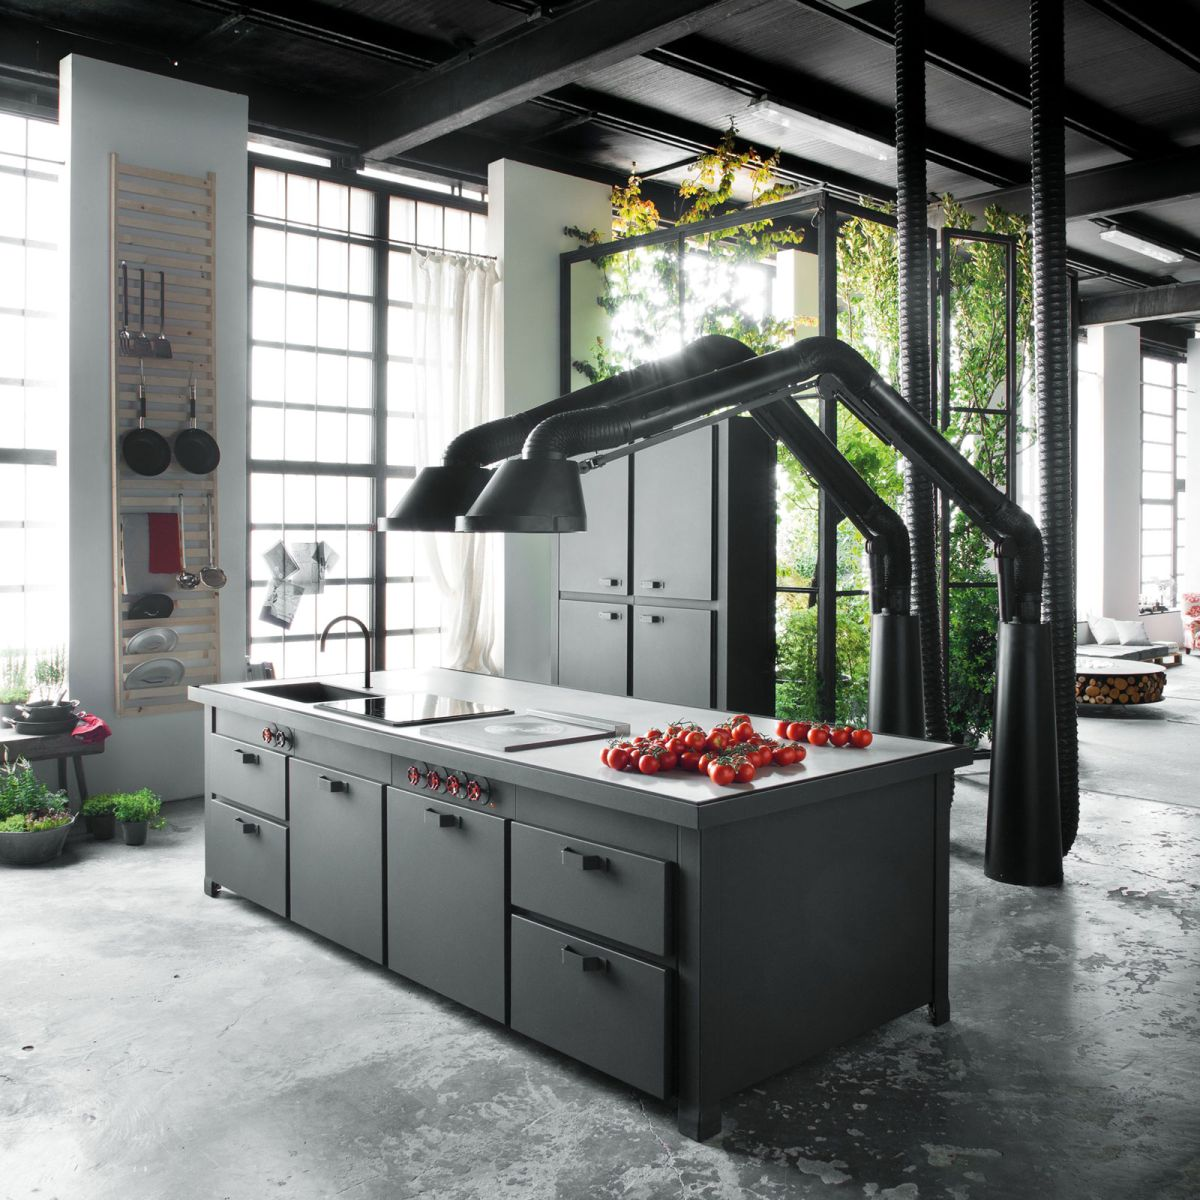 Loft Micassiolo in Milan kitchen island